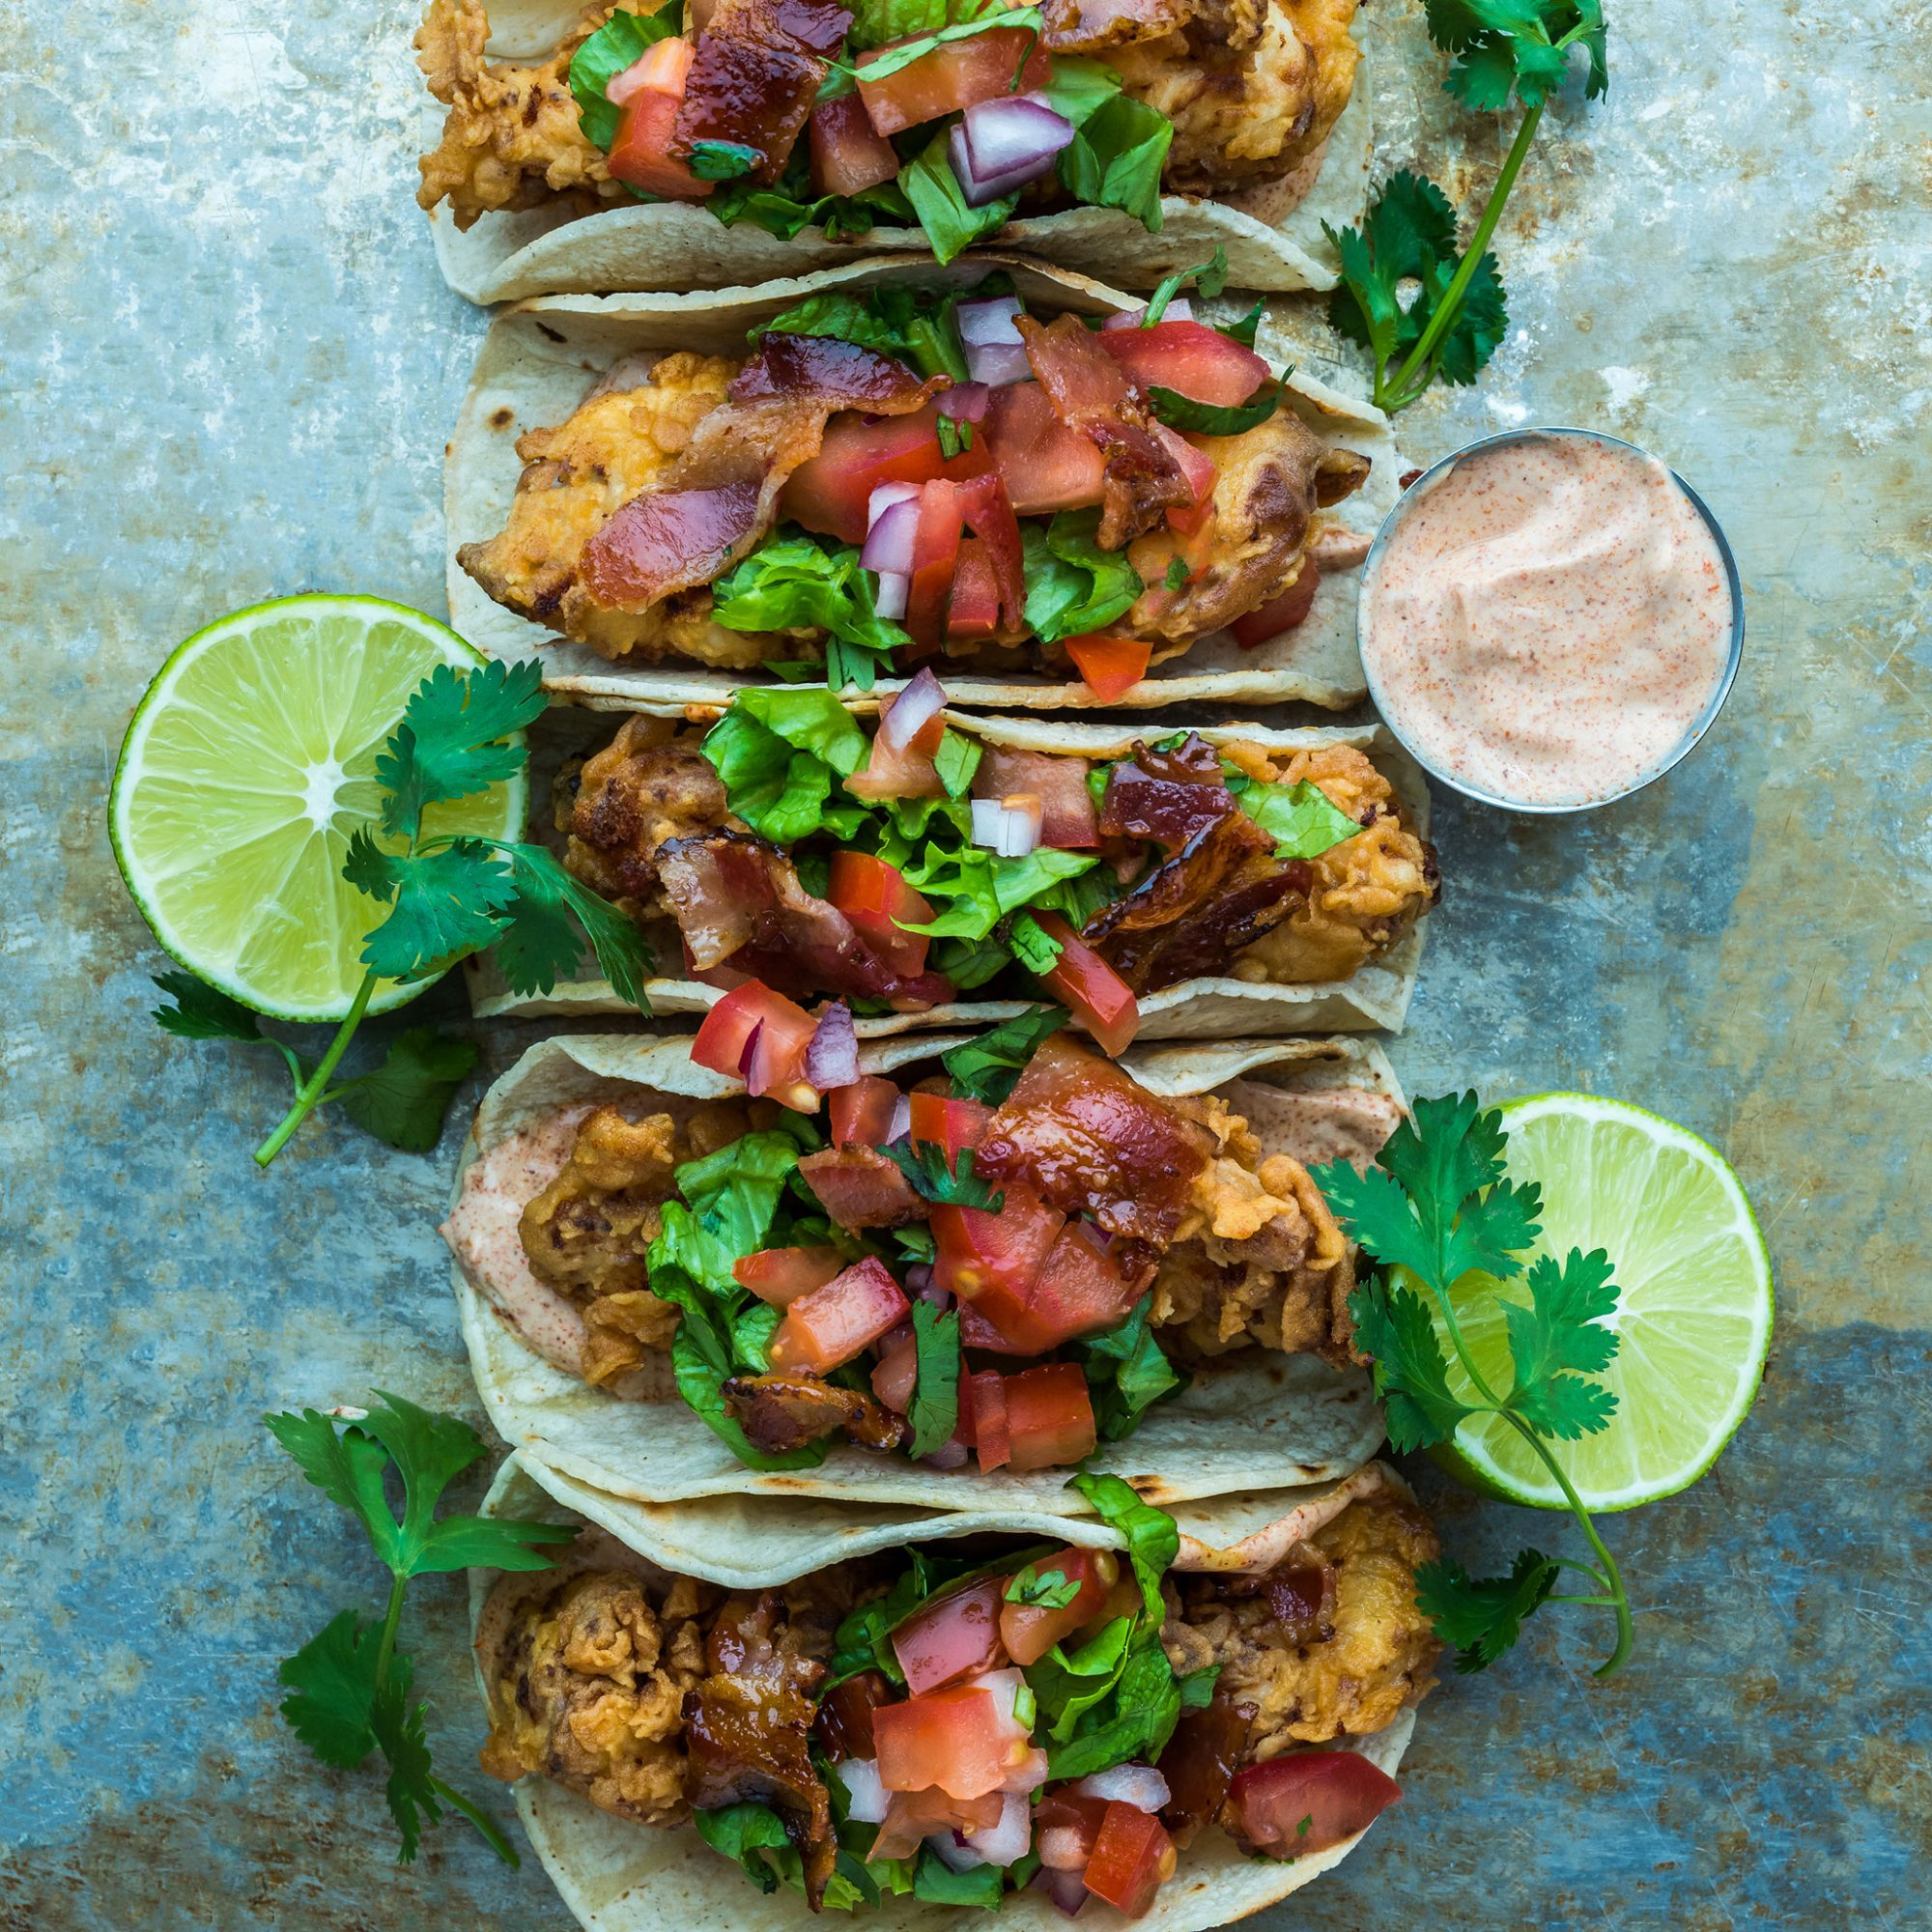 blt-fried-chicken-taco-stacked-fwx